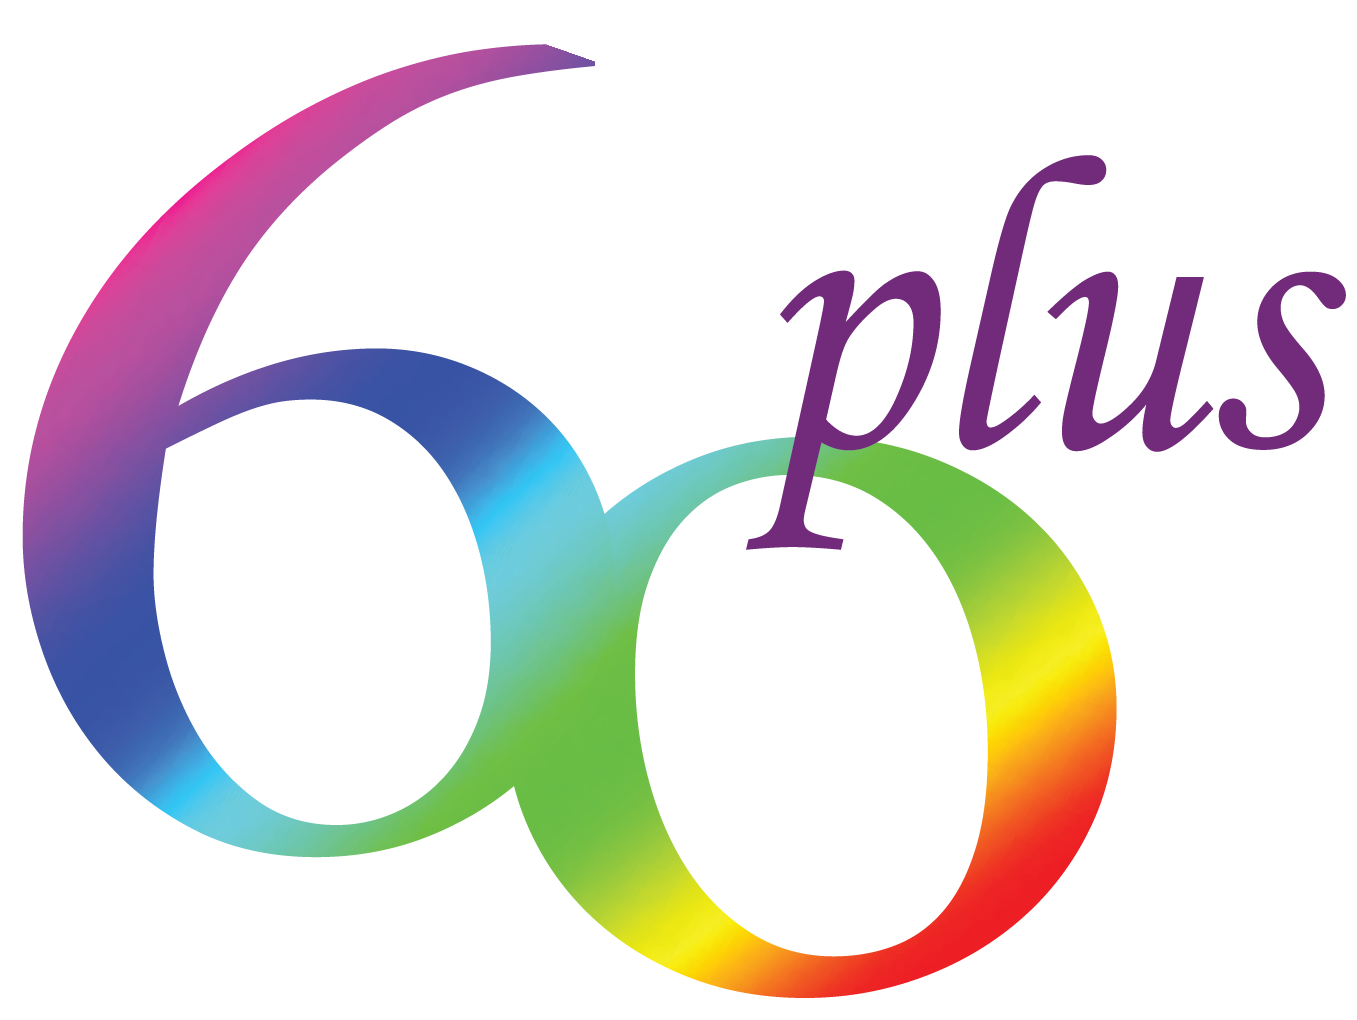 60 plus new logo-01.png